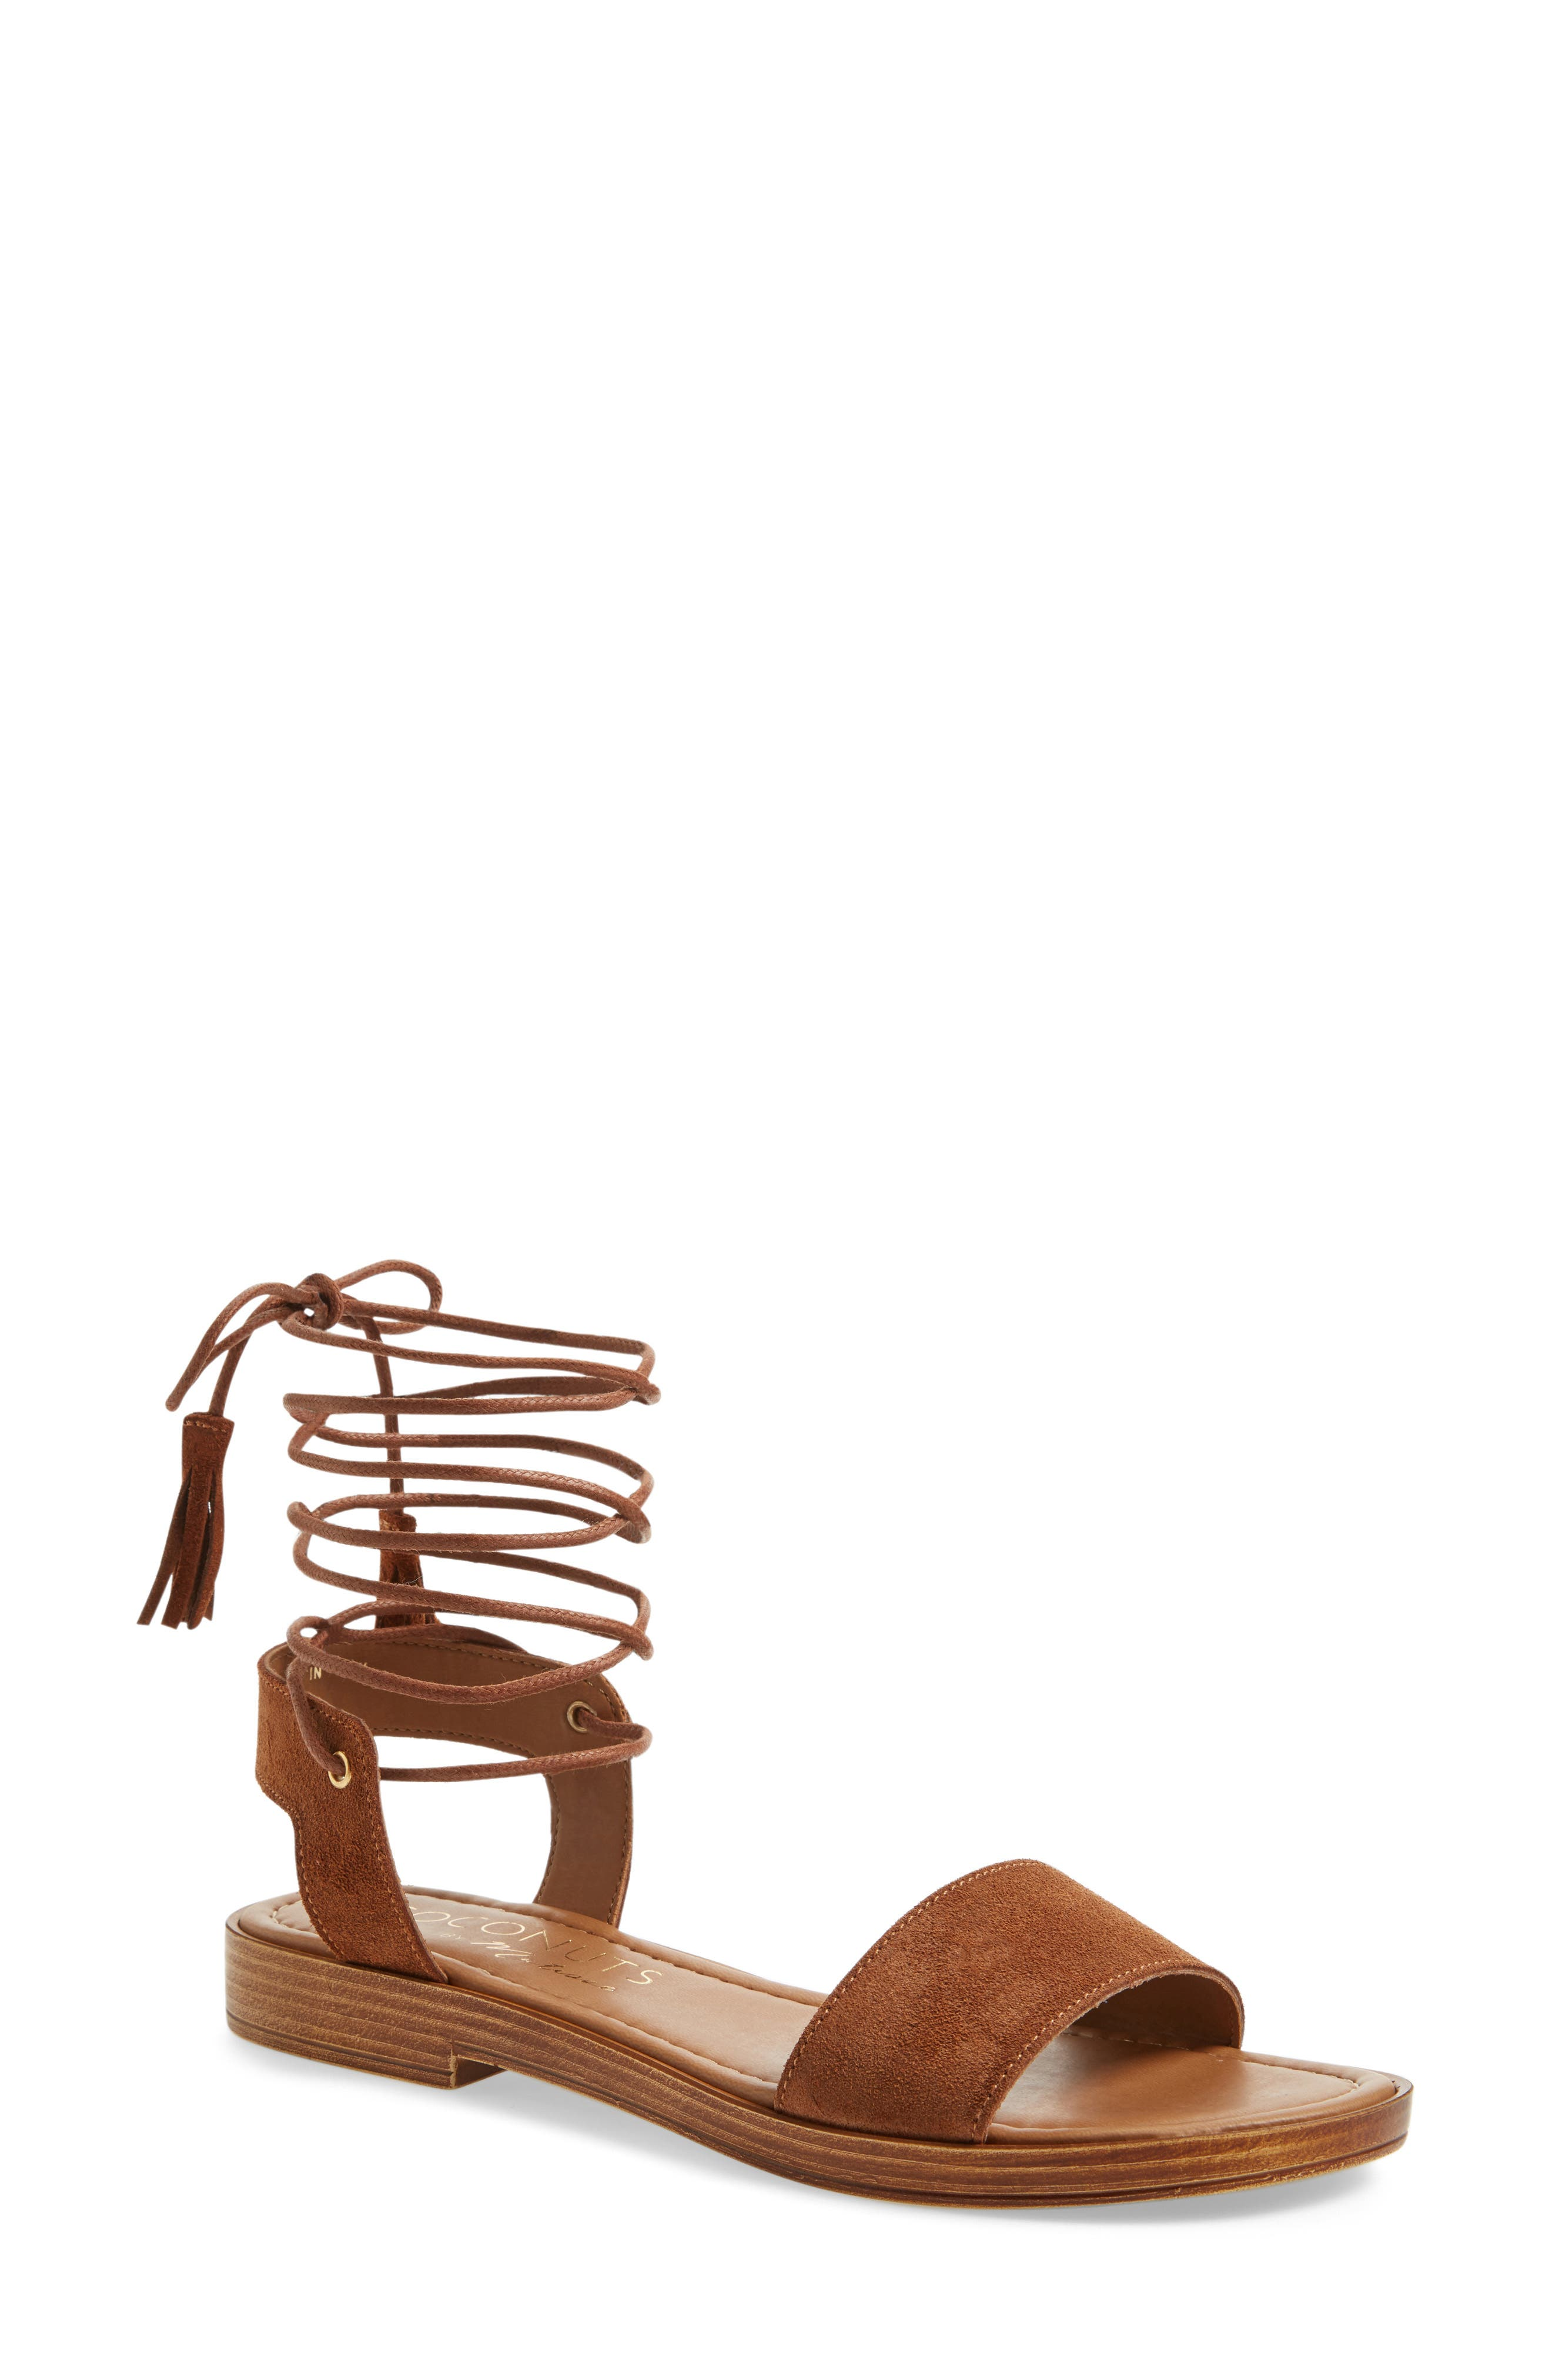 Sting Wraparound Lace Sandal,                         Main,                         color, 238